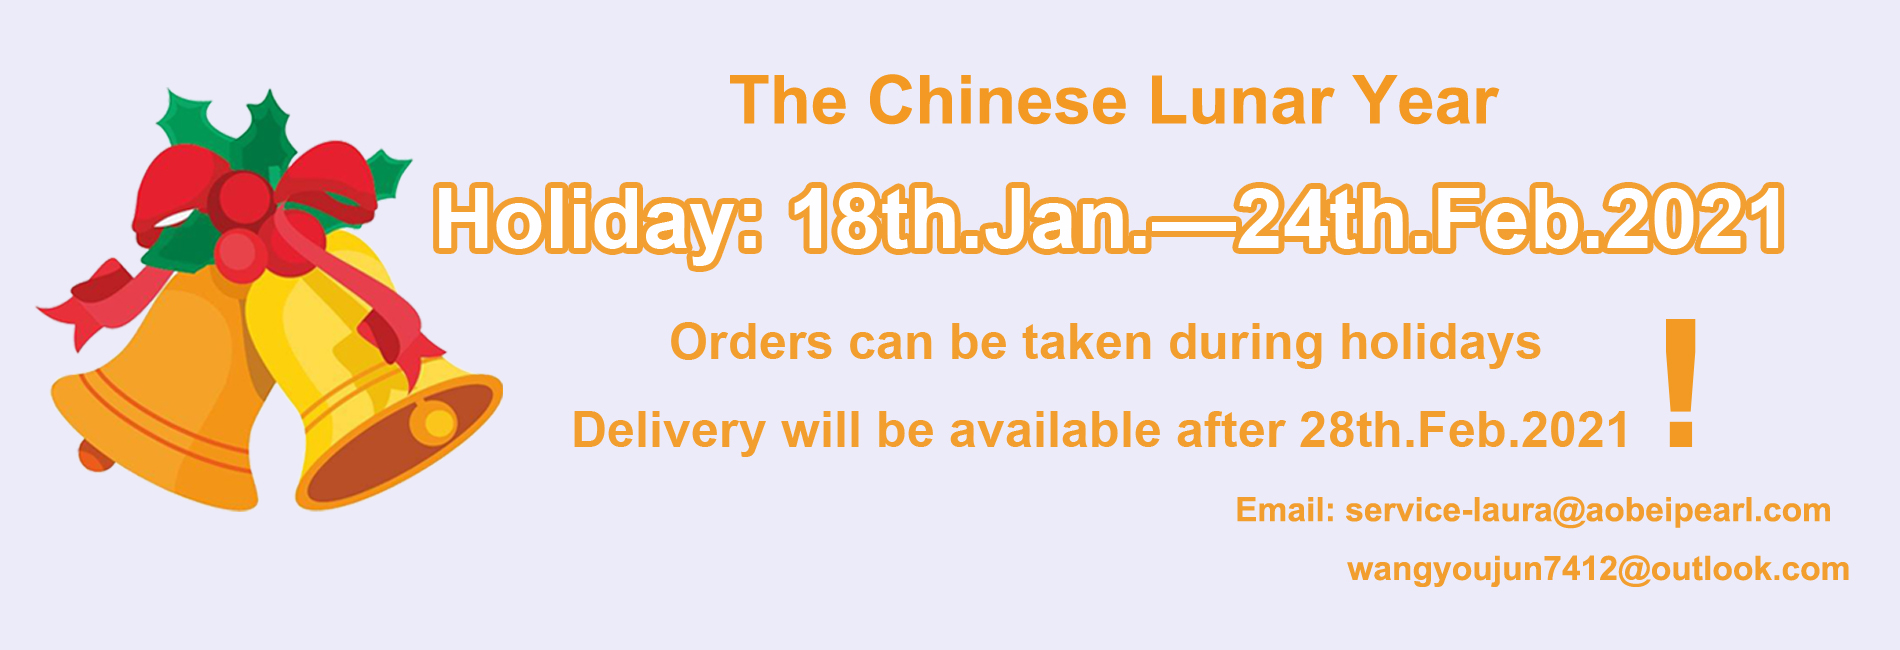 Aobei Pearl Chinese Luna Year Holiday Announcement